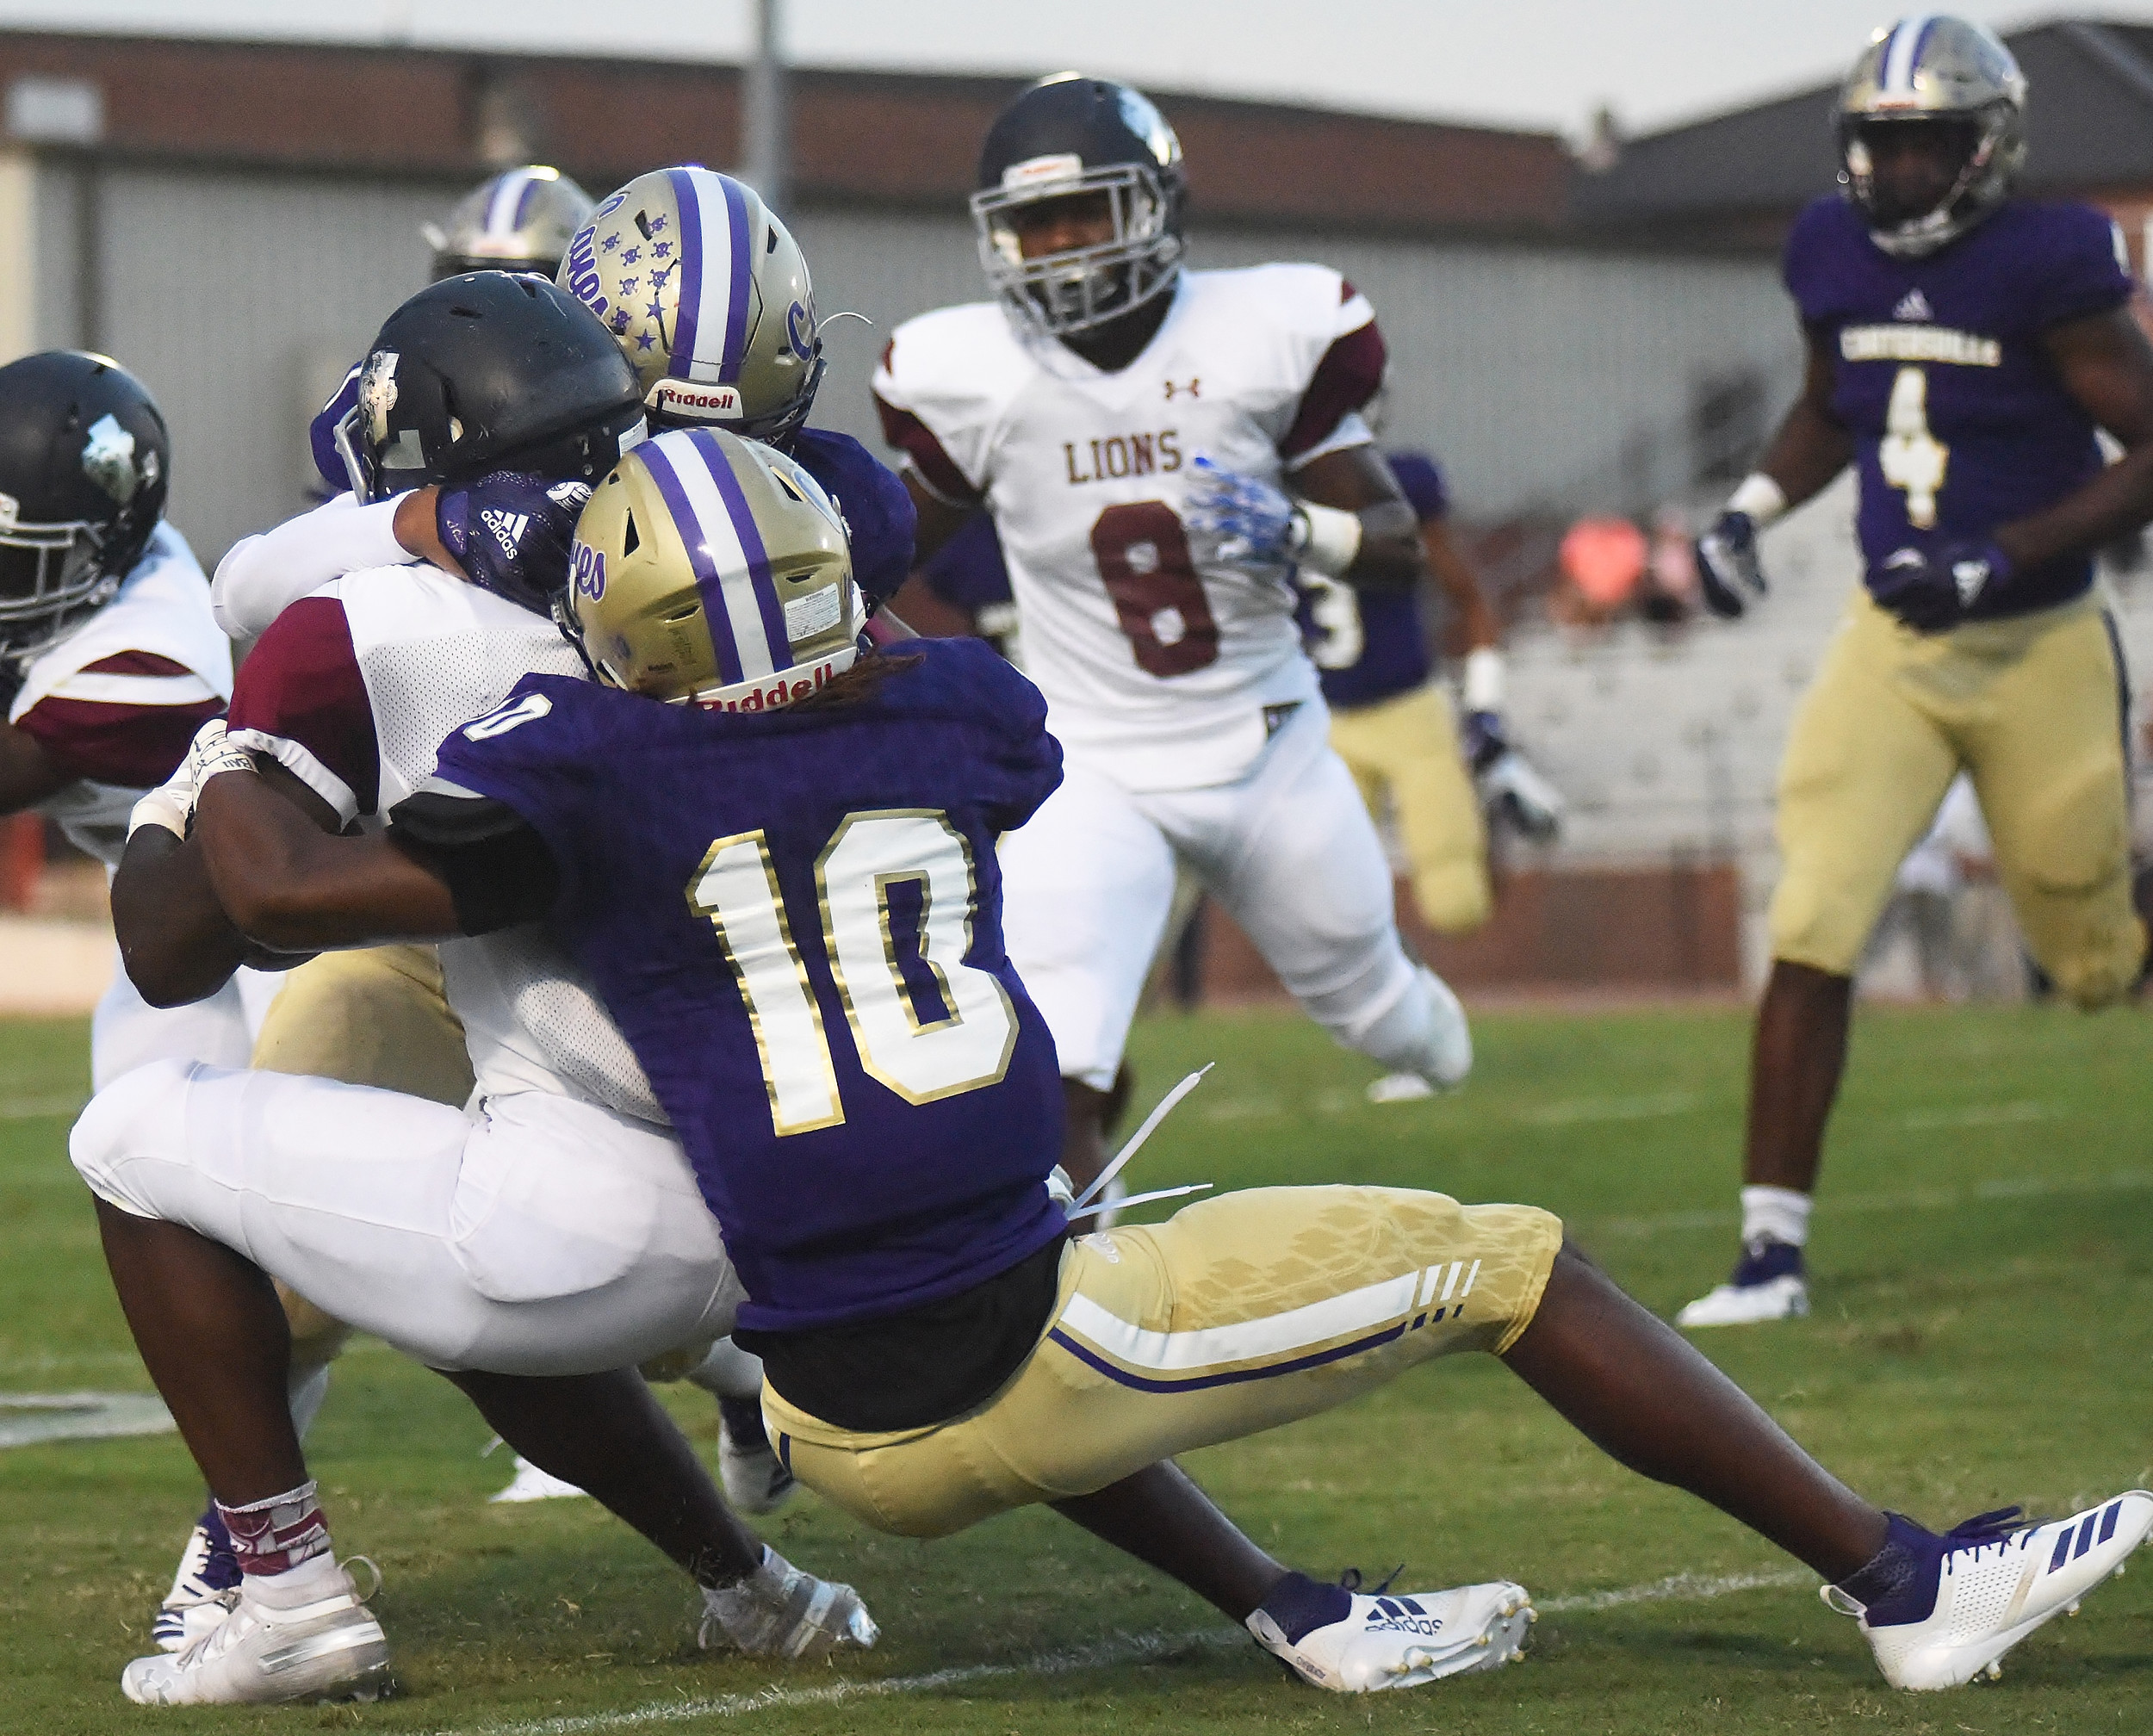 Cartersville's Sunni Moorehead (10) and Marko Dudley take down a Luella running back during last week's game at Weinman Stadium. Cartersville is one of eight teams in the state to have not allowed a touchdown so far this season, and the Canes hope to keep up the trend Friday at home against McNair.